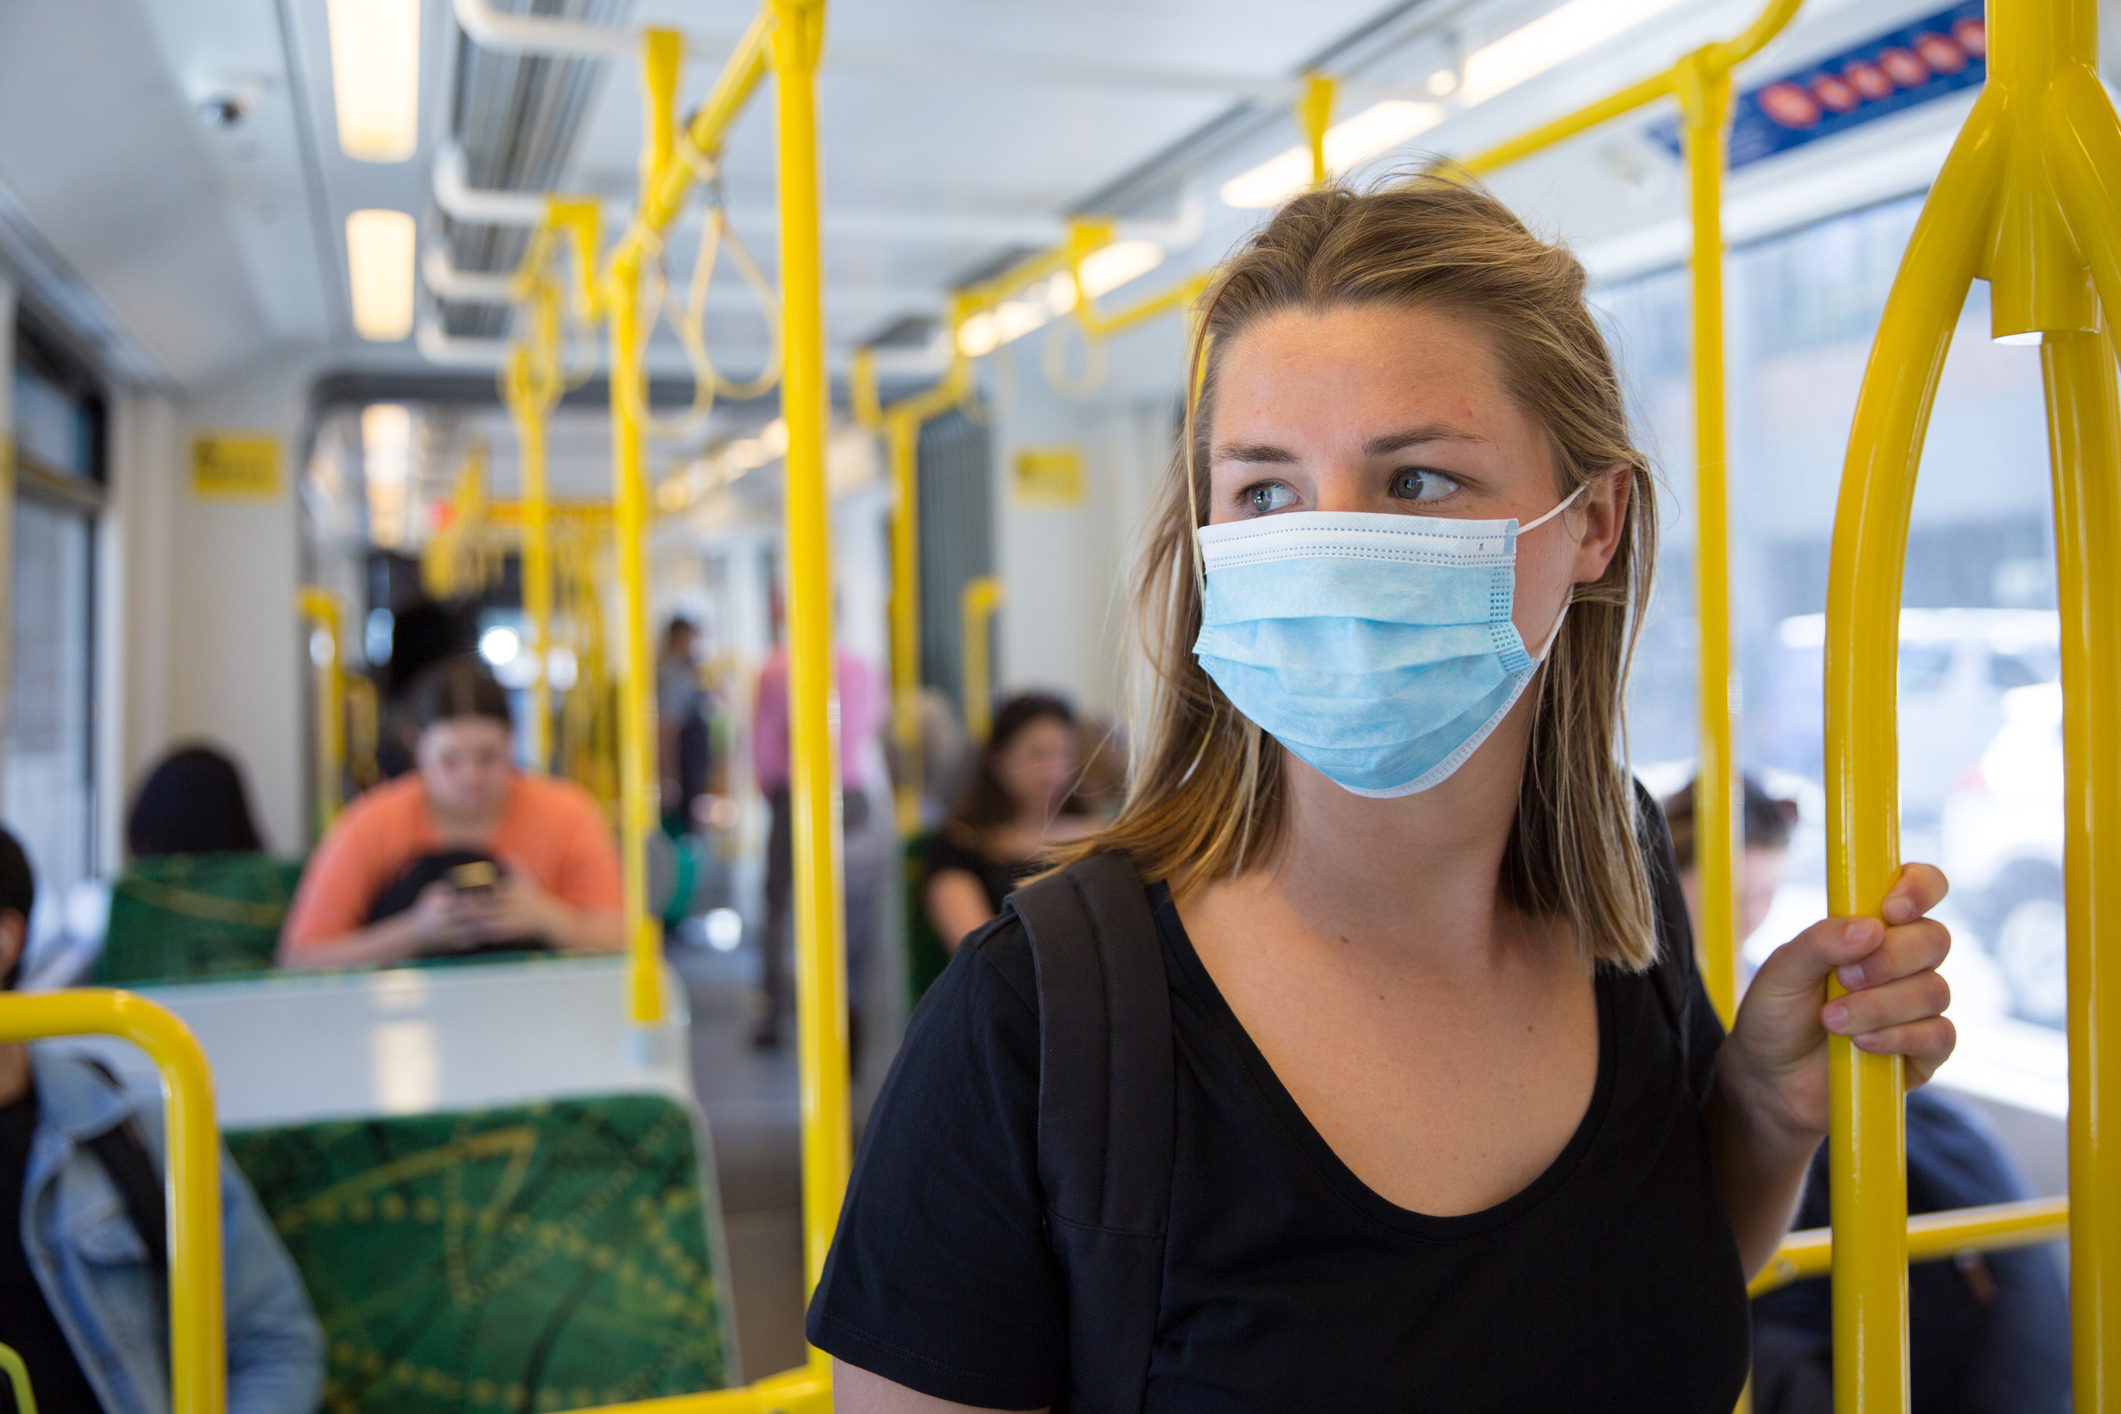 Woman in COVID-19 face mask on public transport